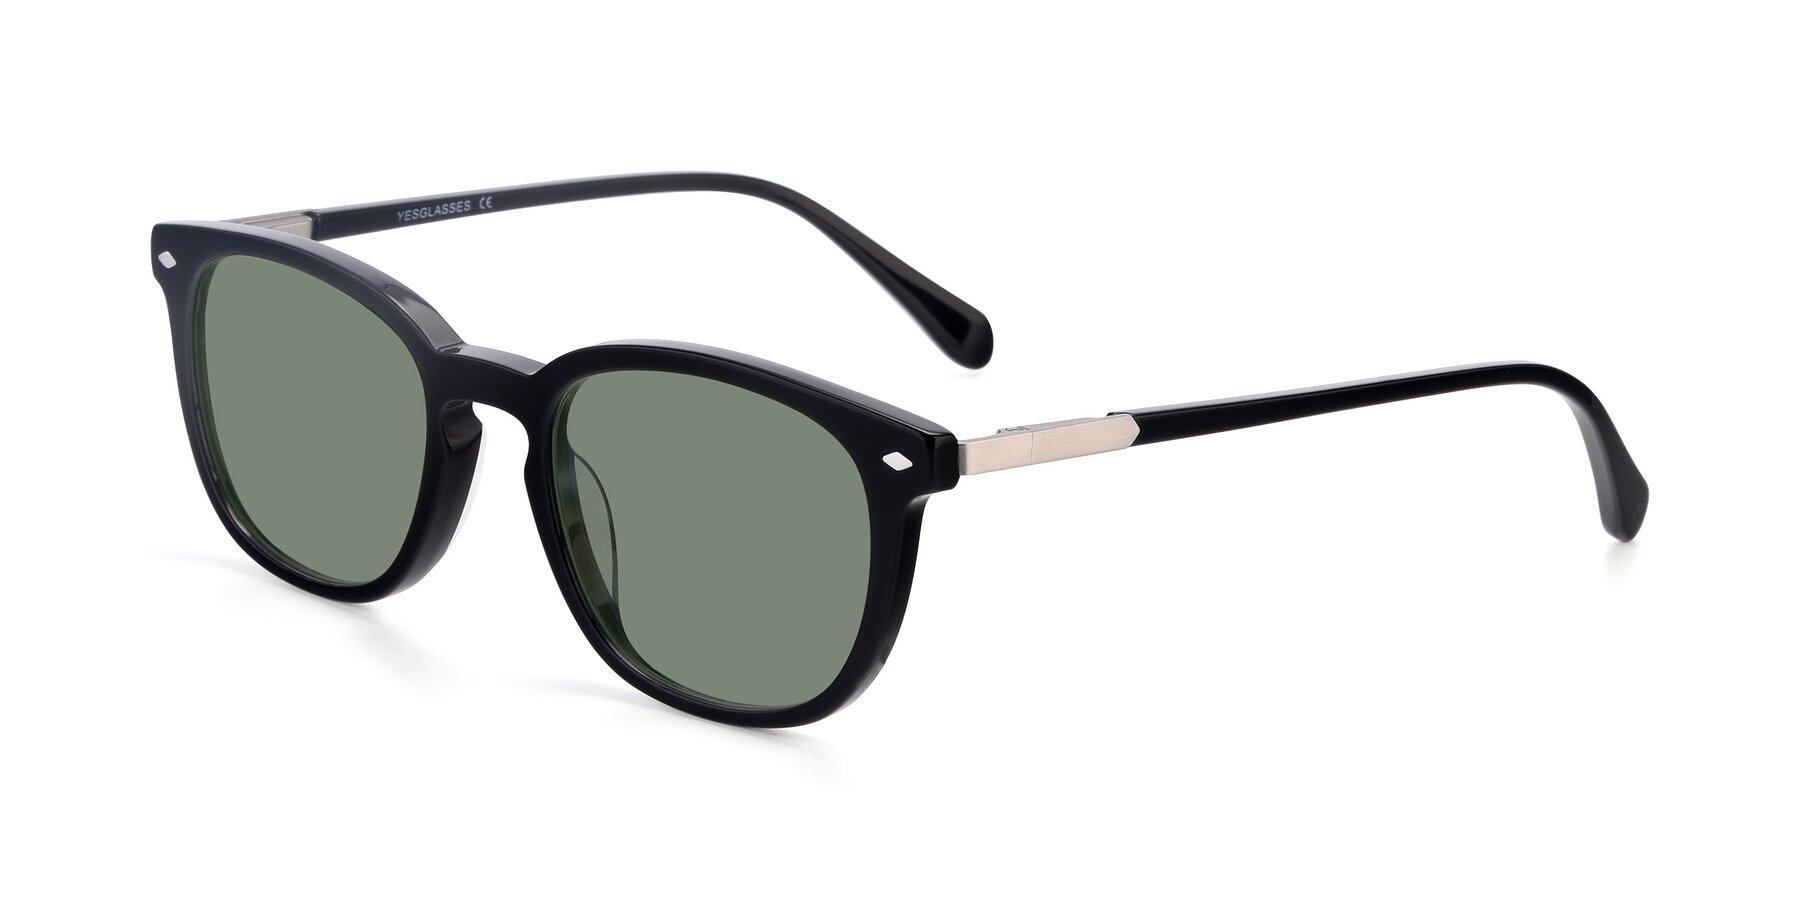 Angle of 17578 in Black with Medium Green Tinted Lenses